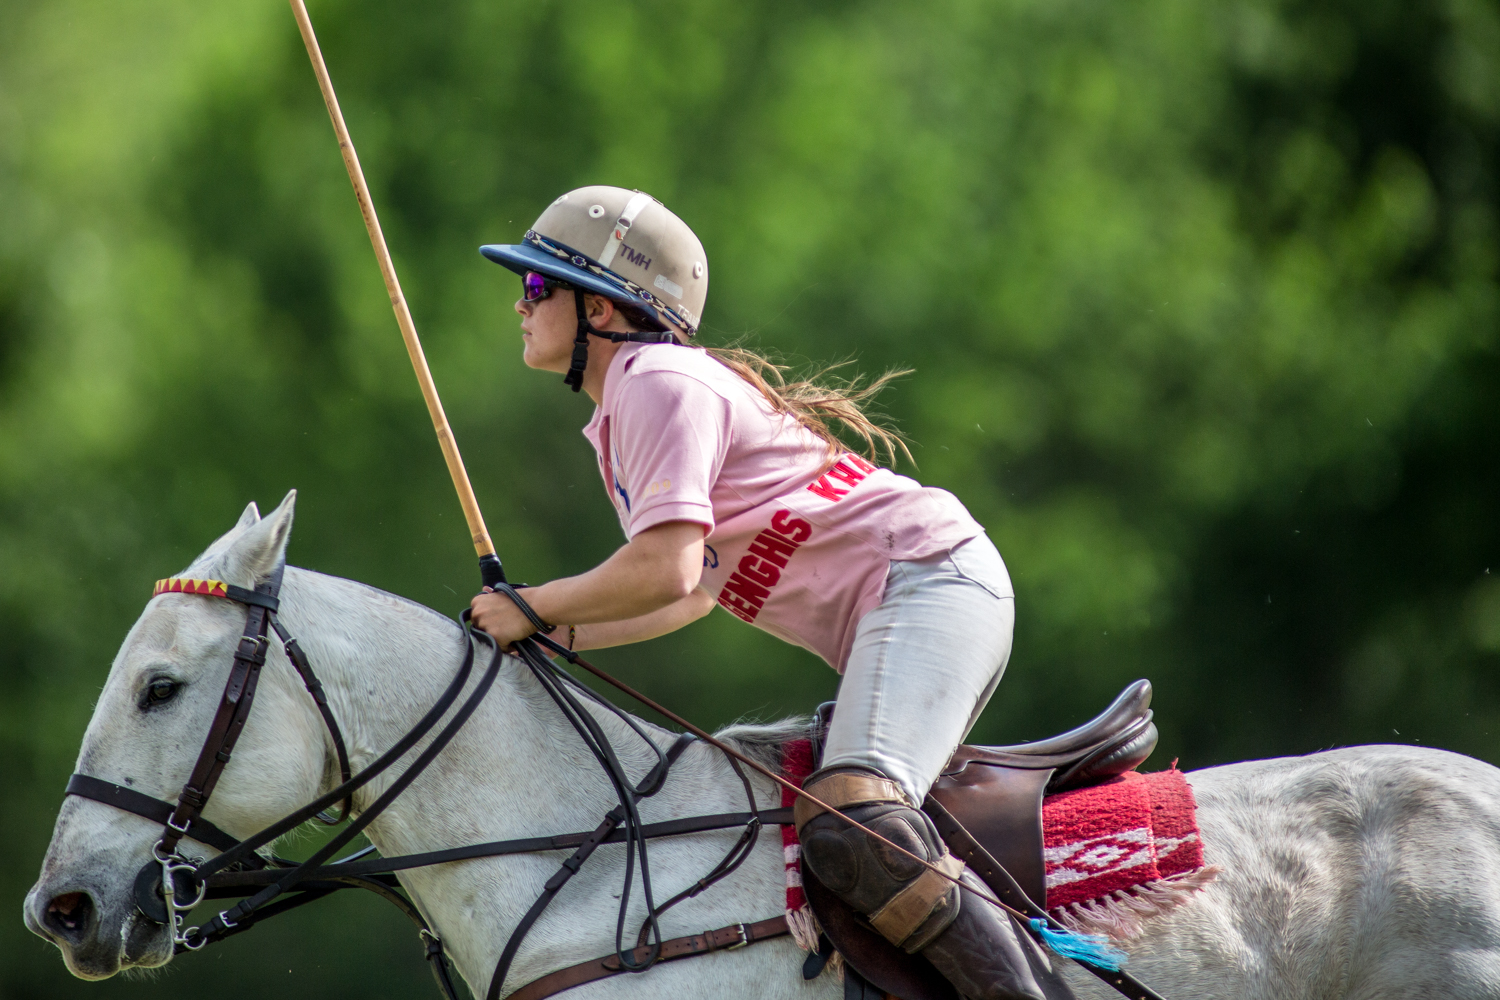 Hudspeth on one of her favorite polo ponies, Blueduck, during the first scrimmage match of Houston's spring polo season.